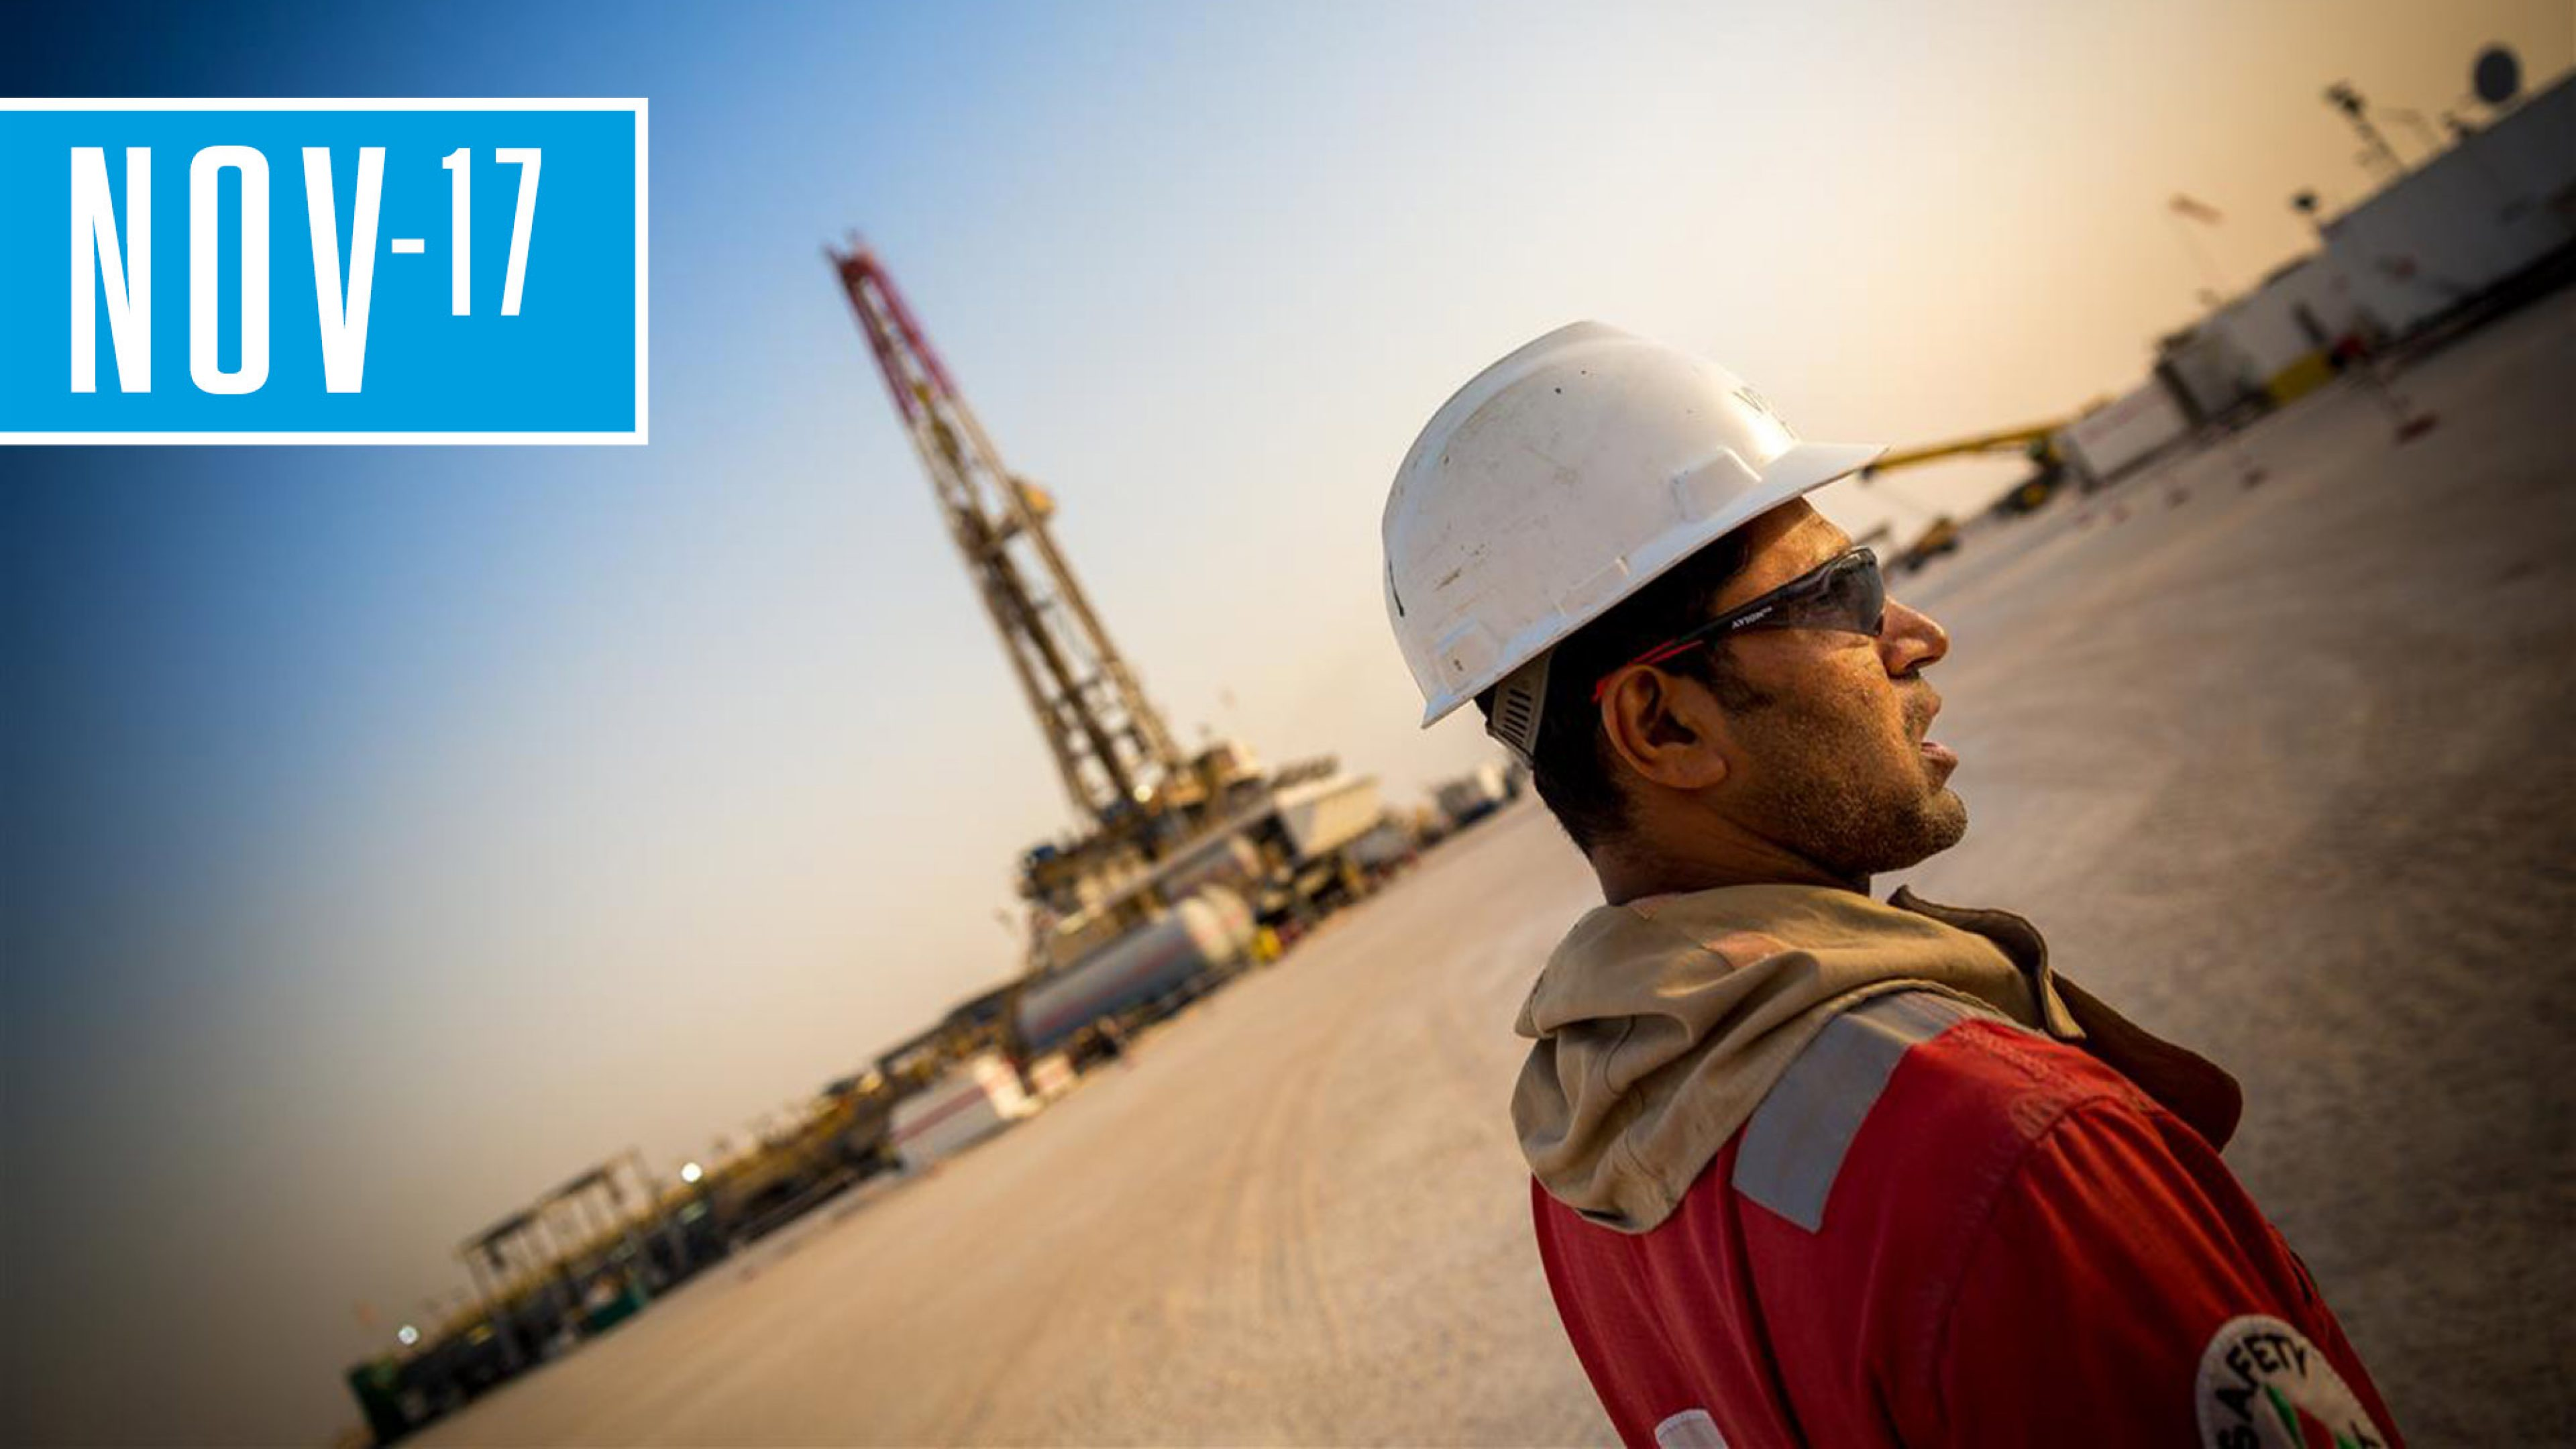 BP Khazzan project, Block 61, Oman